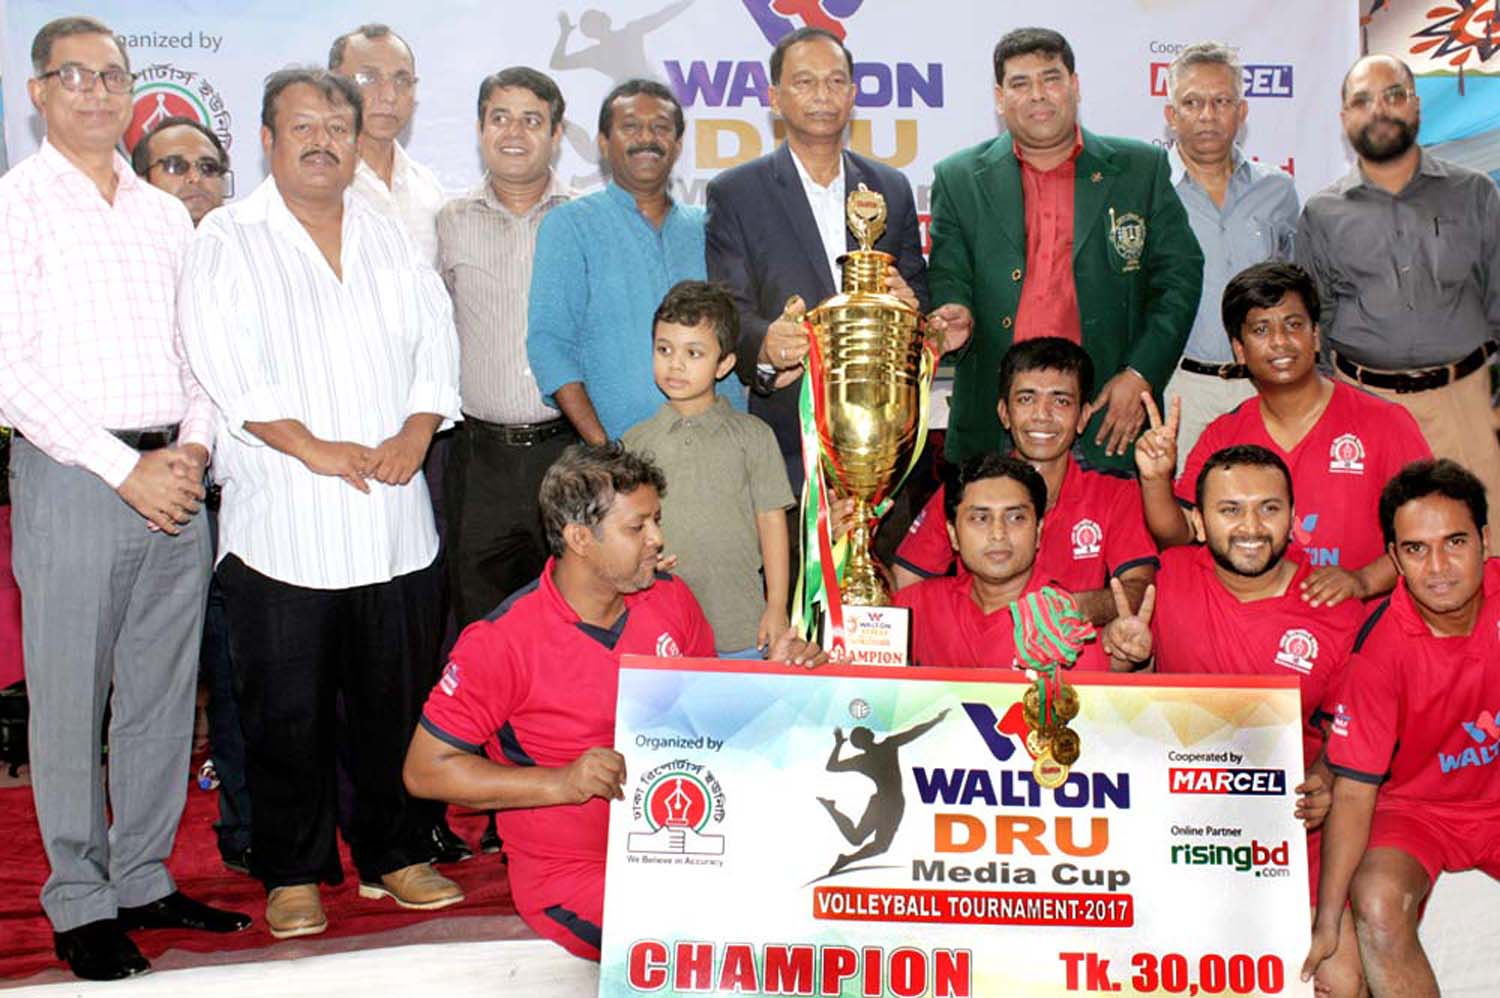 Radio Today clinch DRU Media Cup Volleyball title